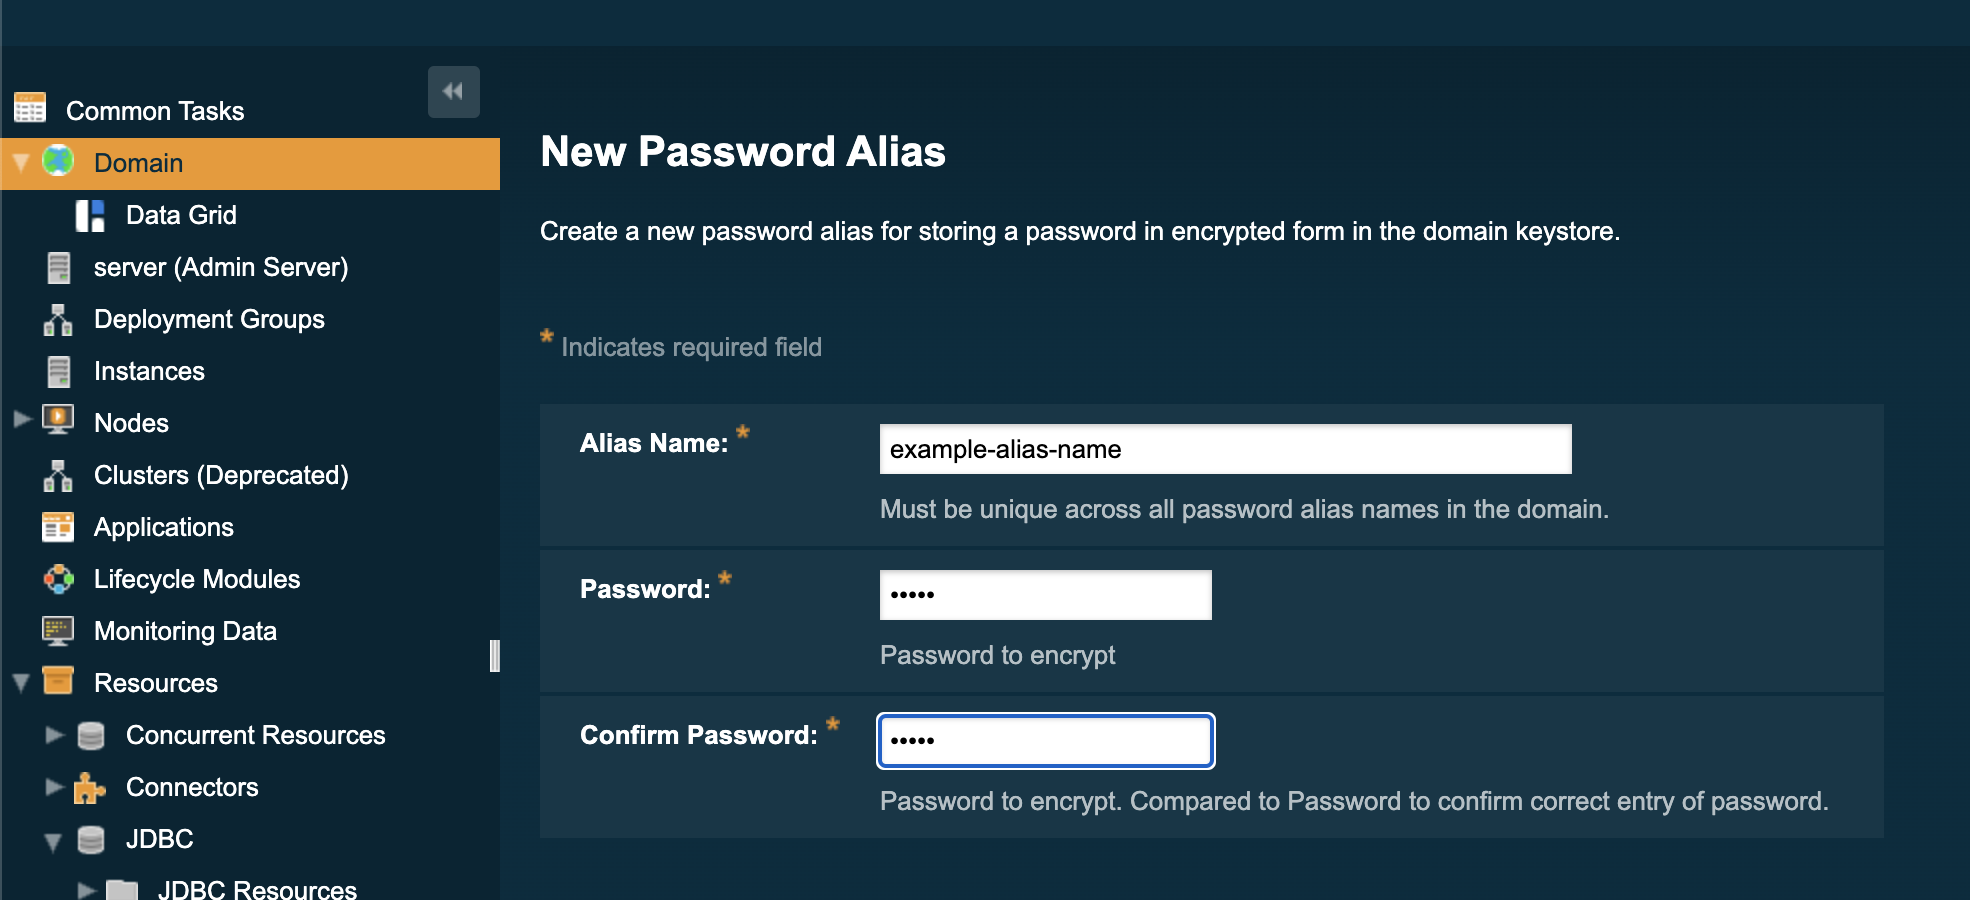 Password alias creation